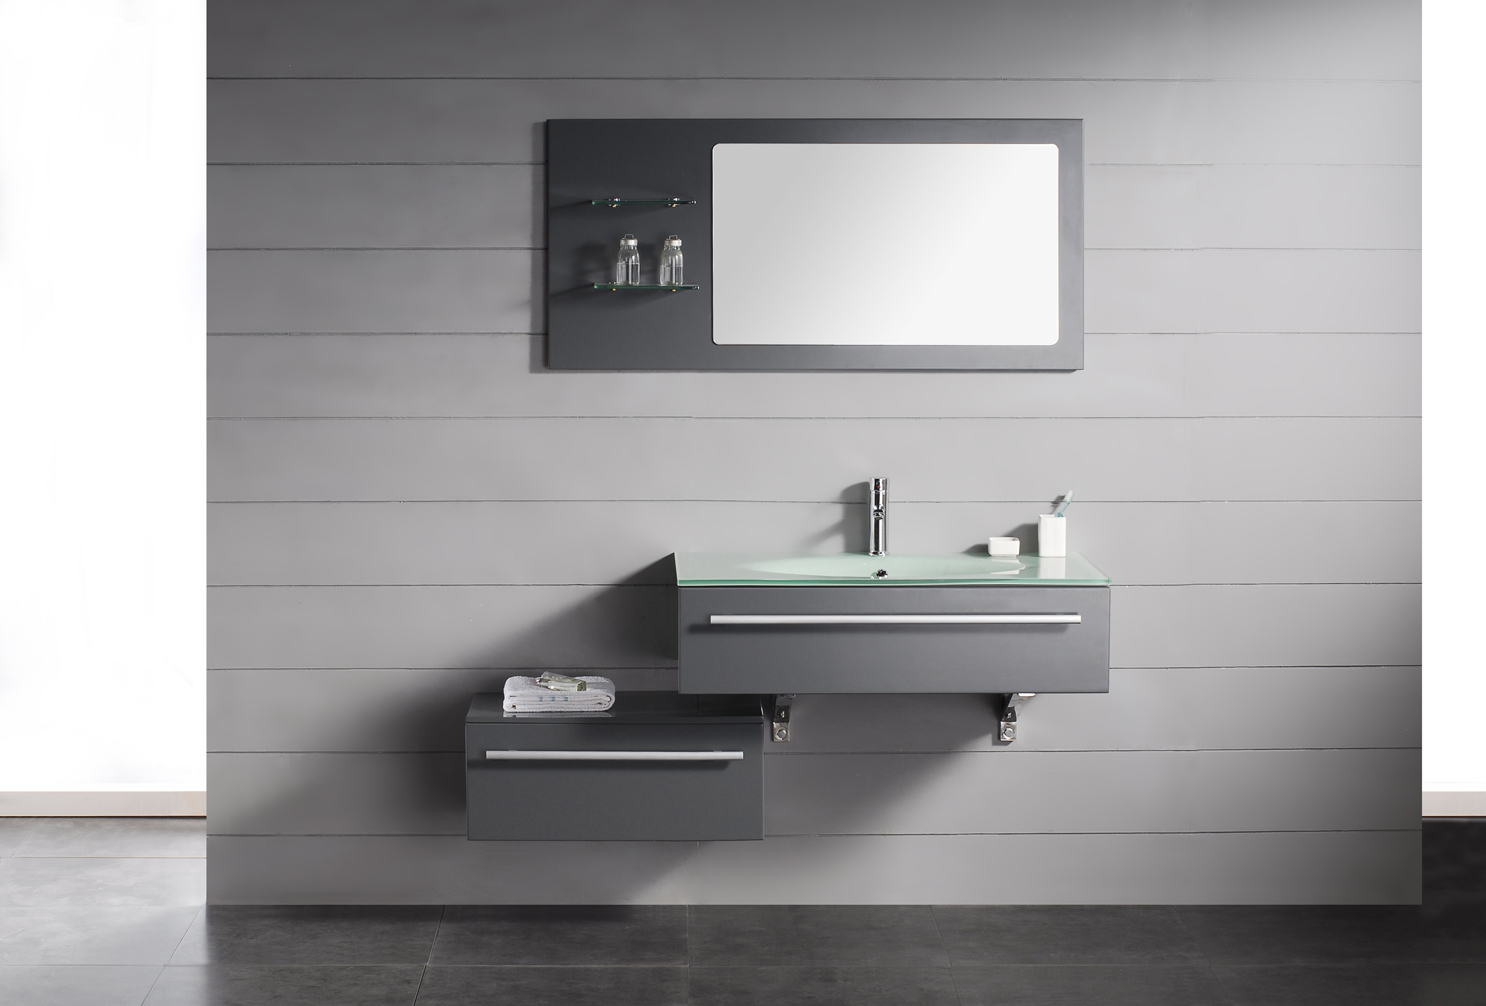 Modern Double Sink Bathroom Vanity Ideas: 25 Modern Bathroom Mirror Designs